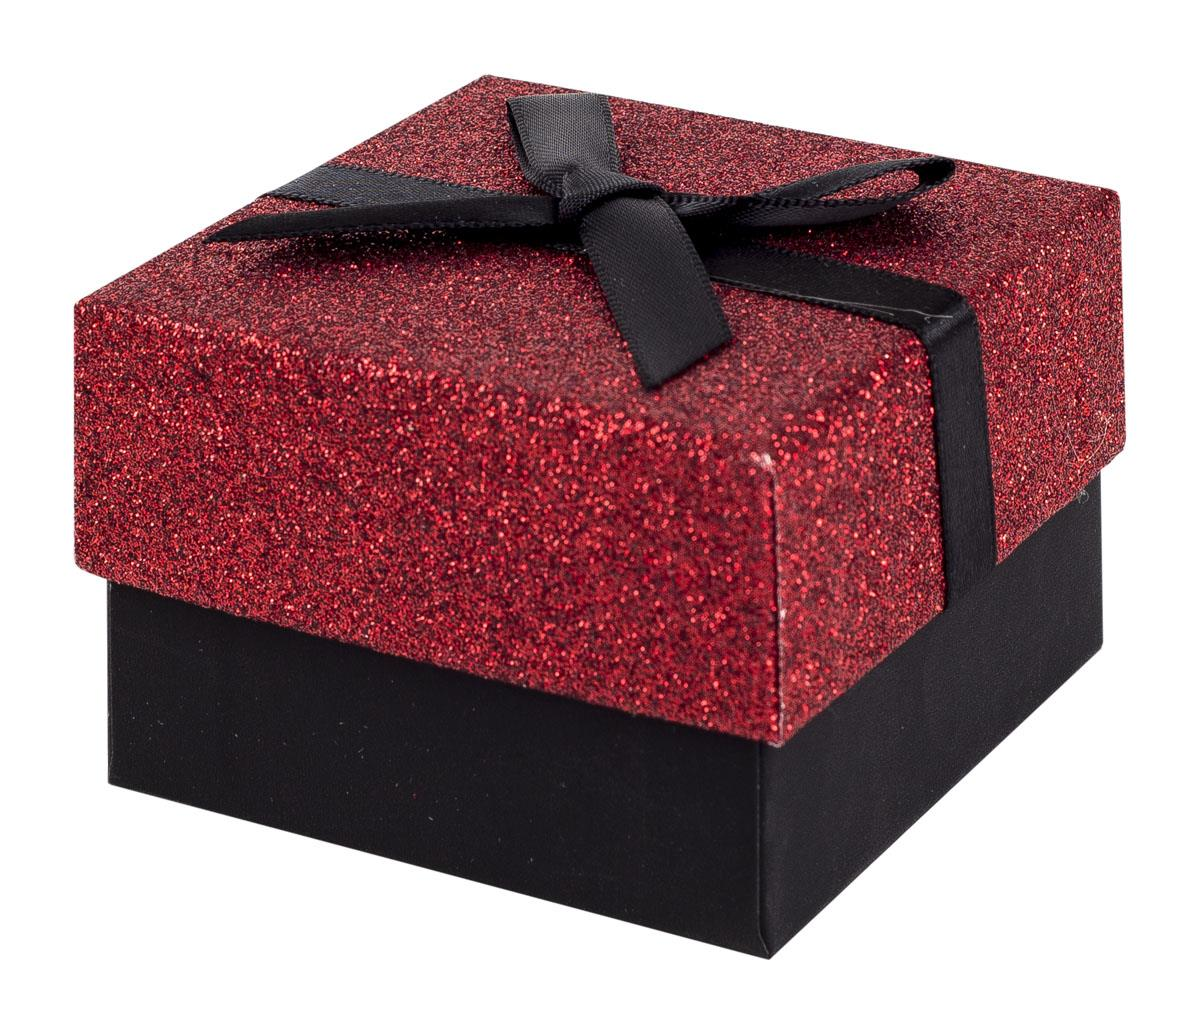 Black and red glitter gift box with black ribbon bow negle Choice Image